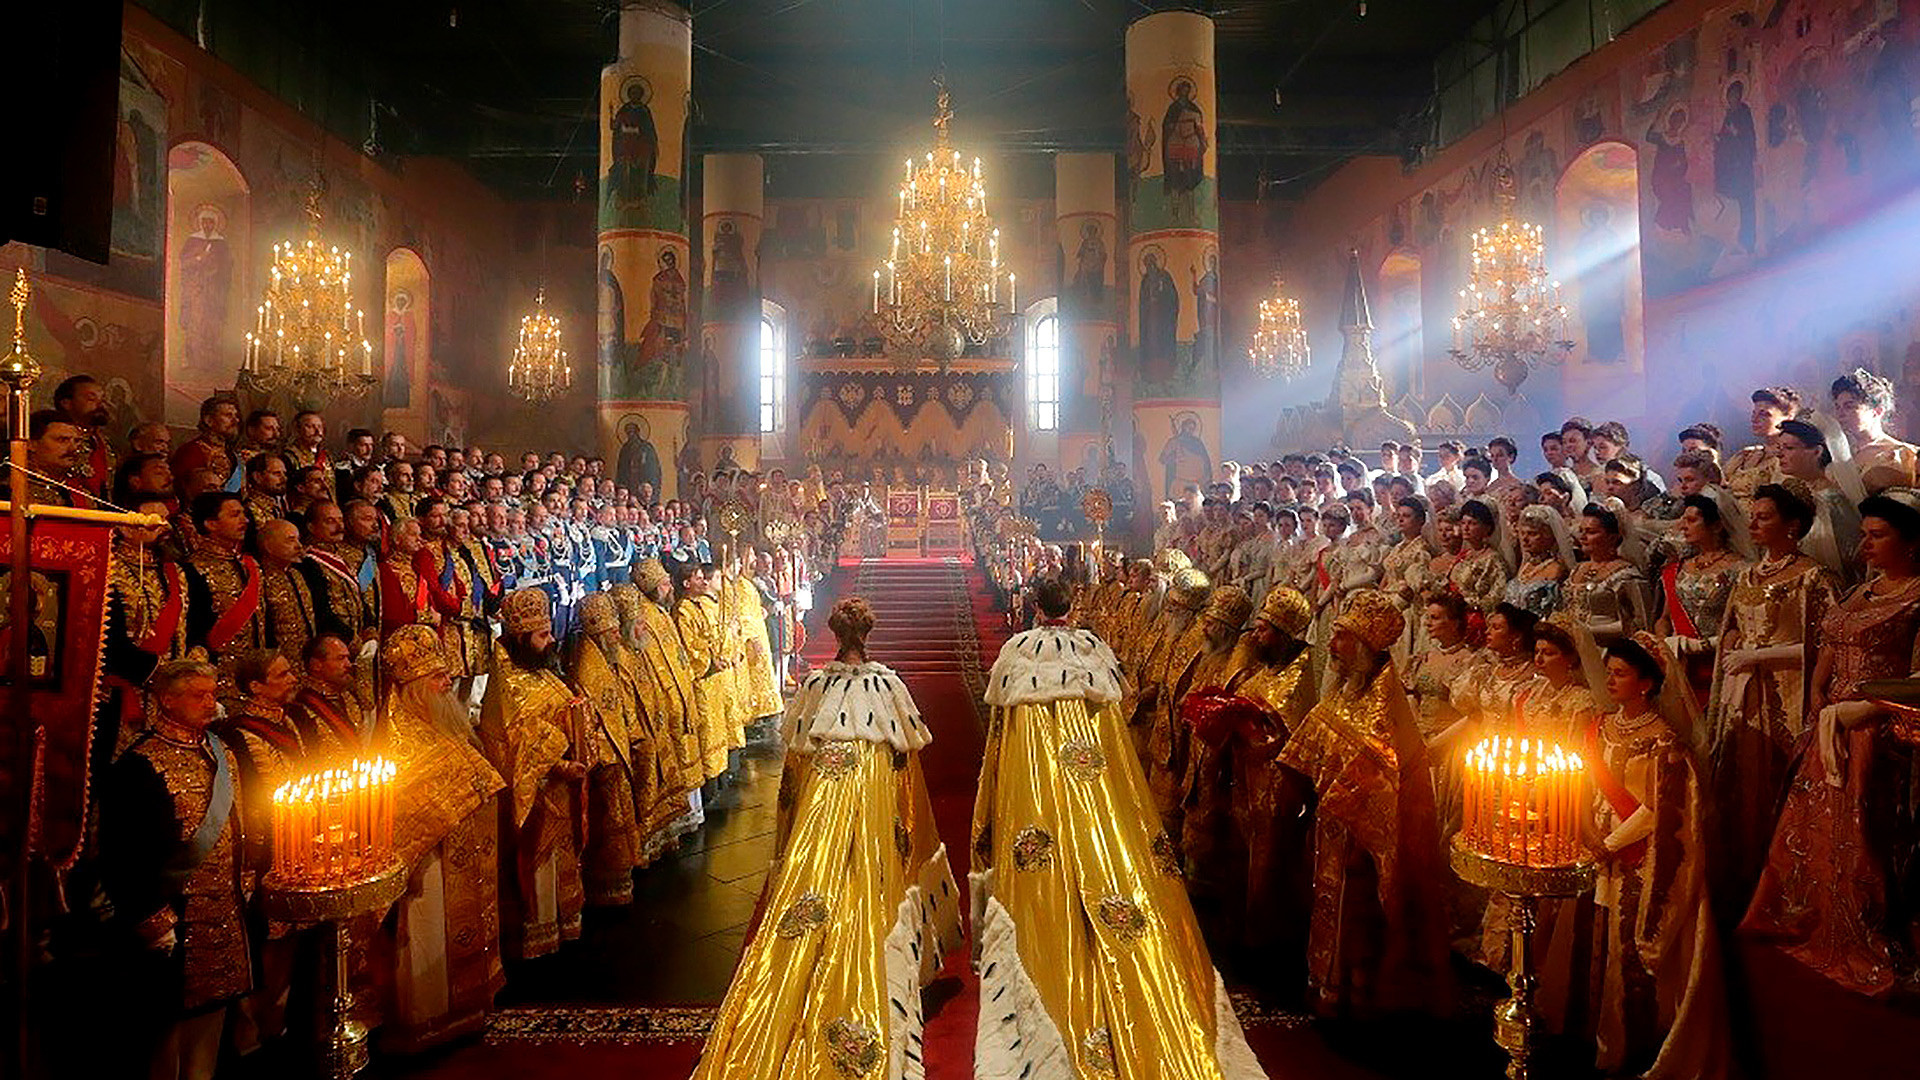 Coronation of Nicholas II in Moscow's Kremlin.